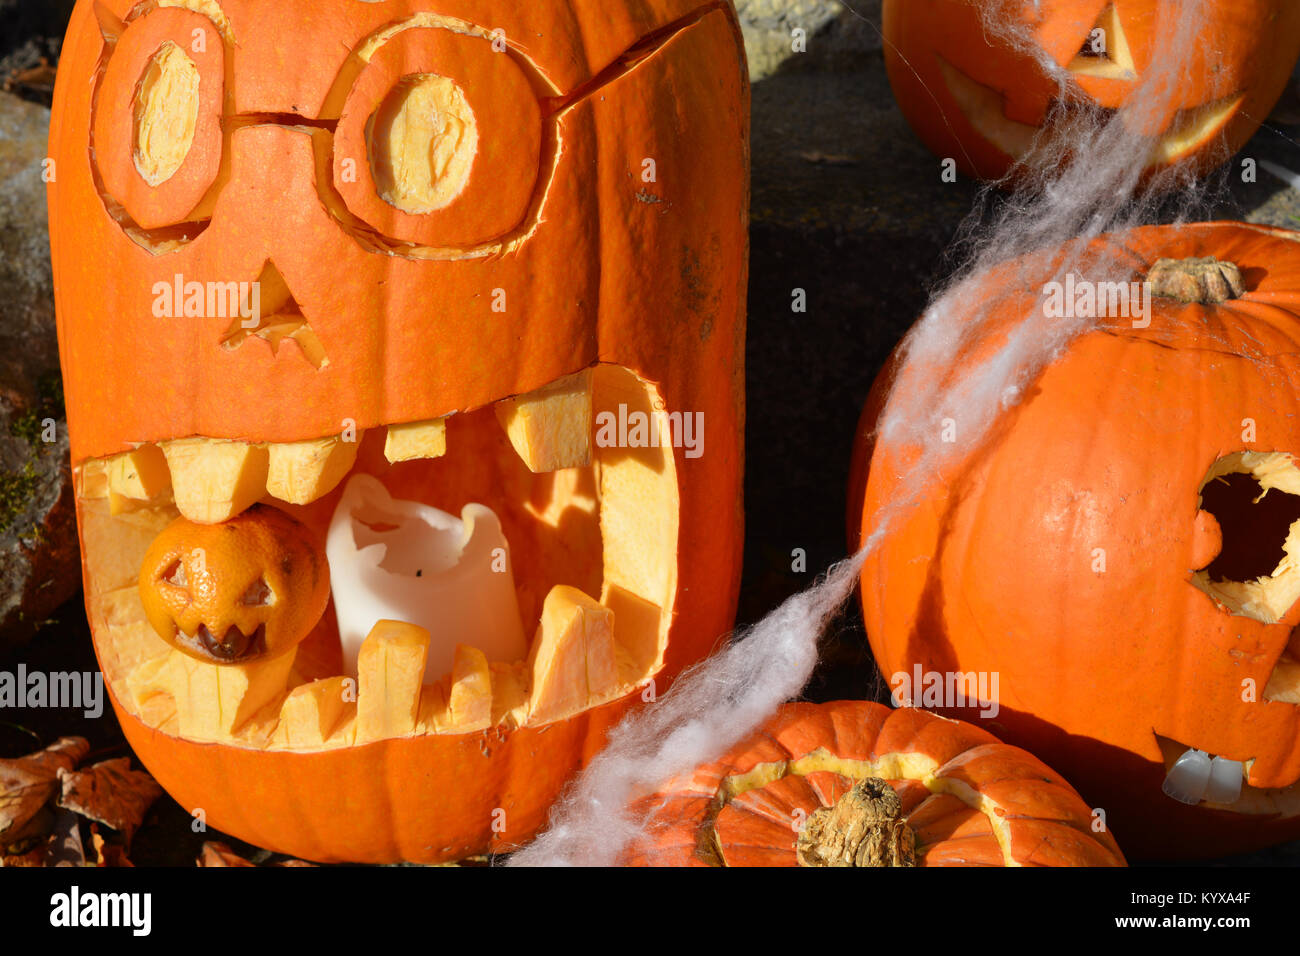 Carved halloween pumpkins and a carved tangerine on a doorstep - Stock Image & Spirit Halloween Stock Photos \u0026 Spirit Halloween Stock Images - Alamy